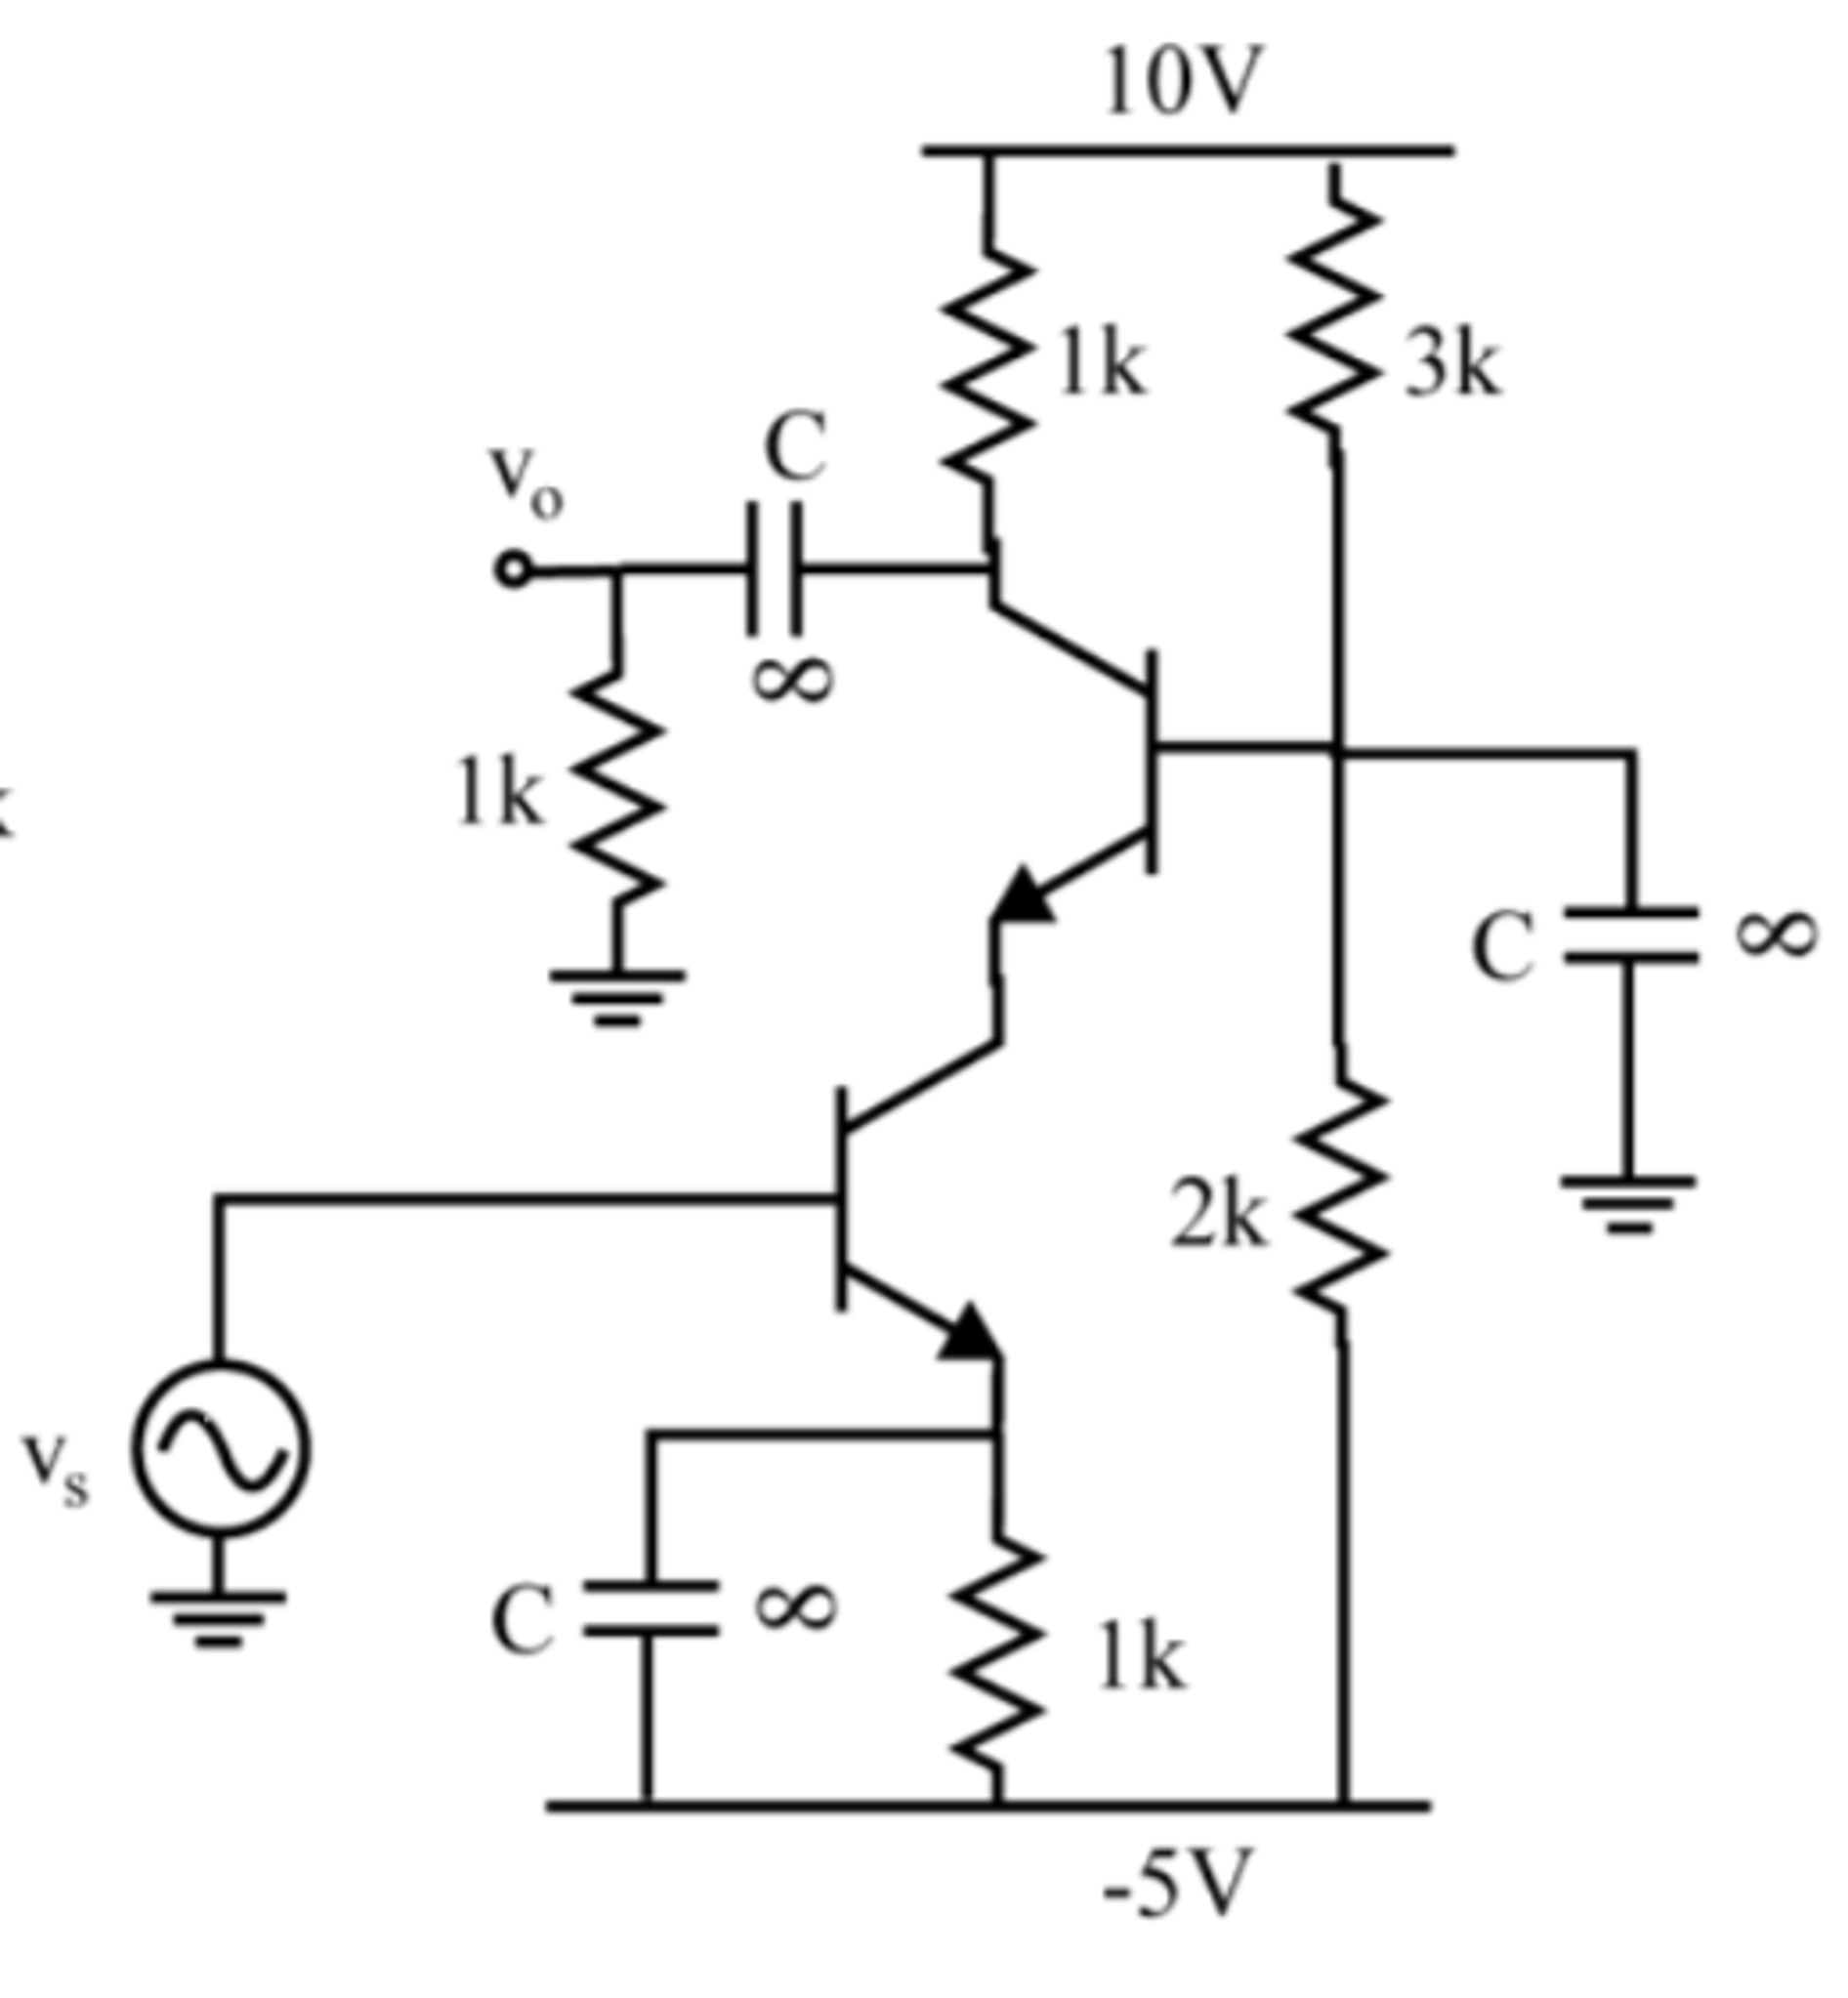 Solved: For The Following Circuit, Sketch The AC Equivalen ...